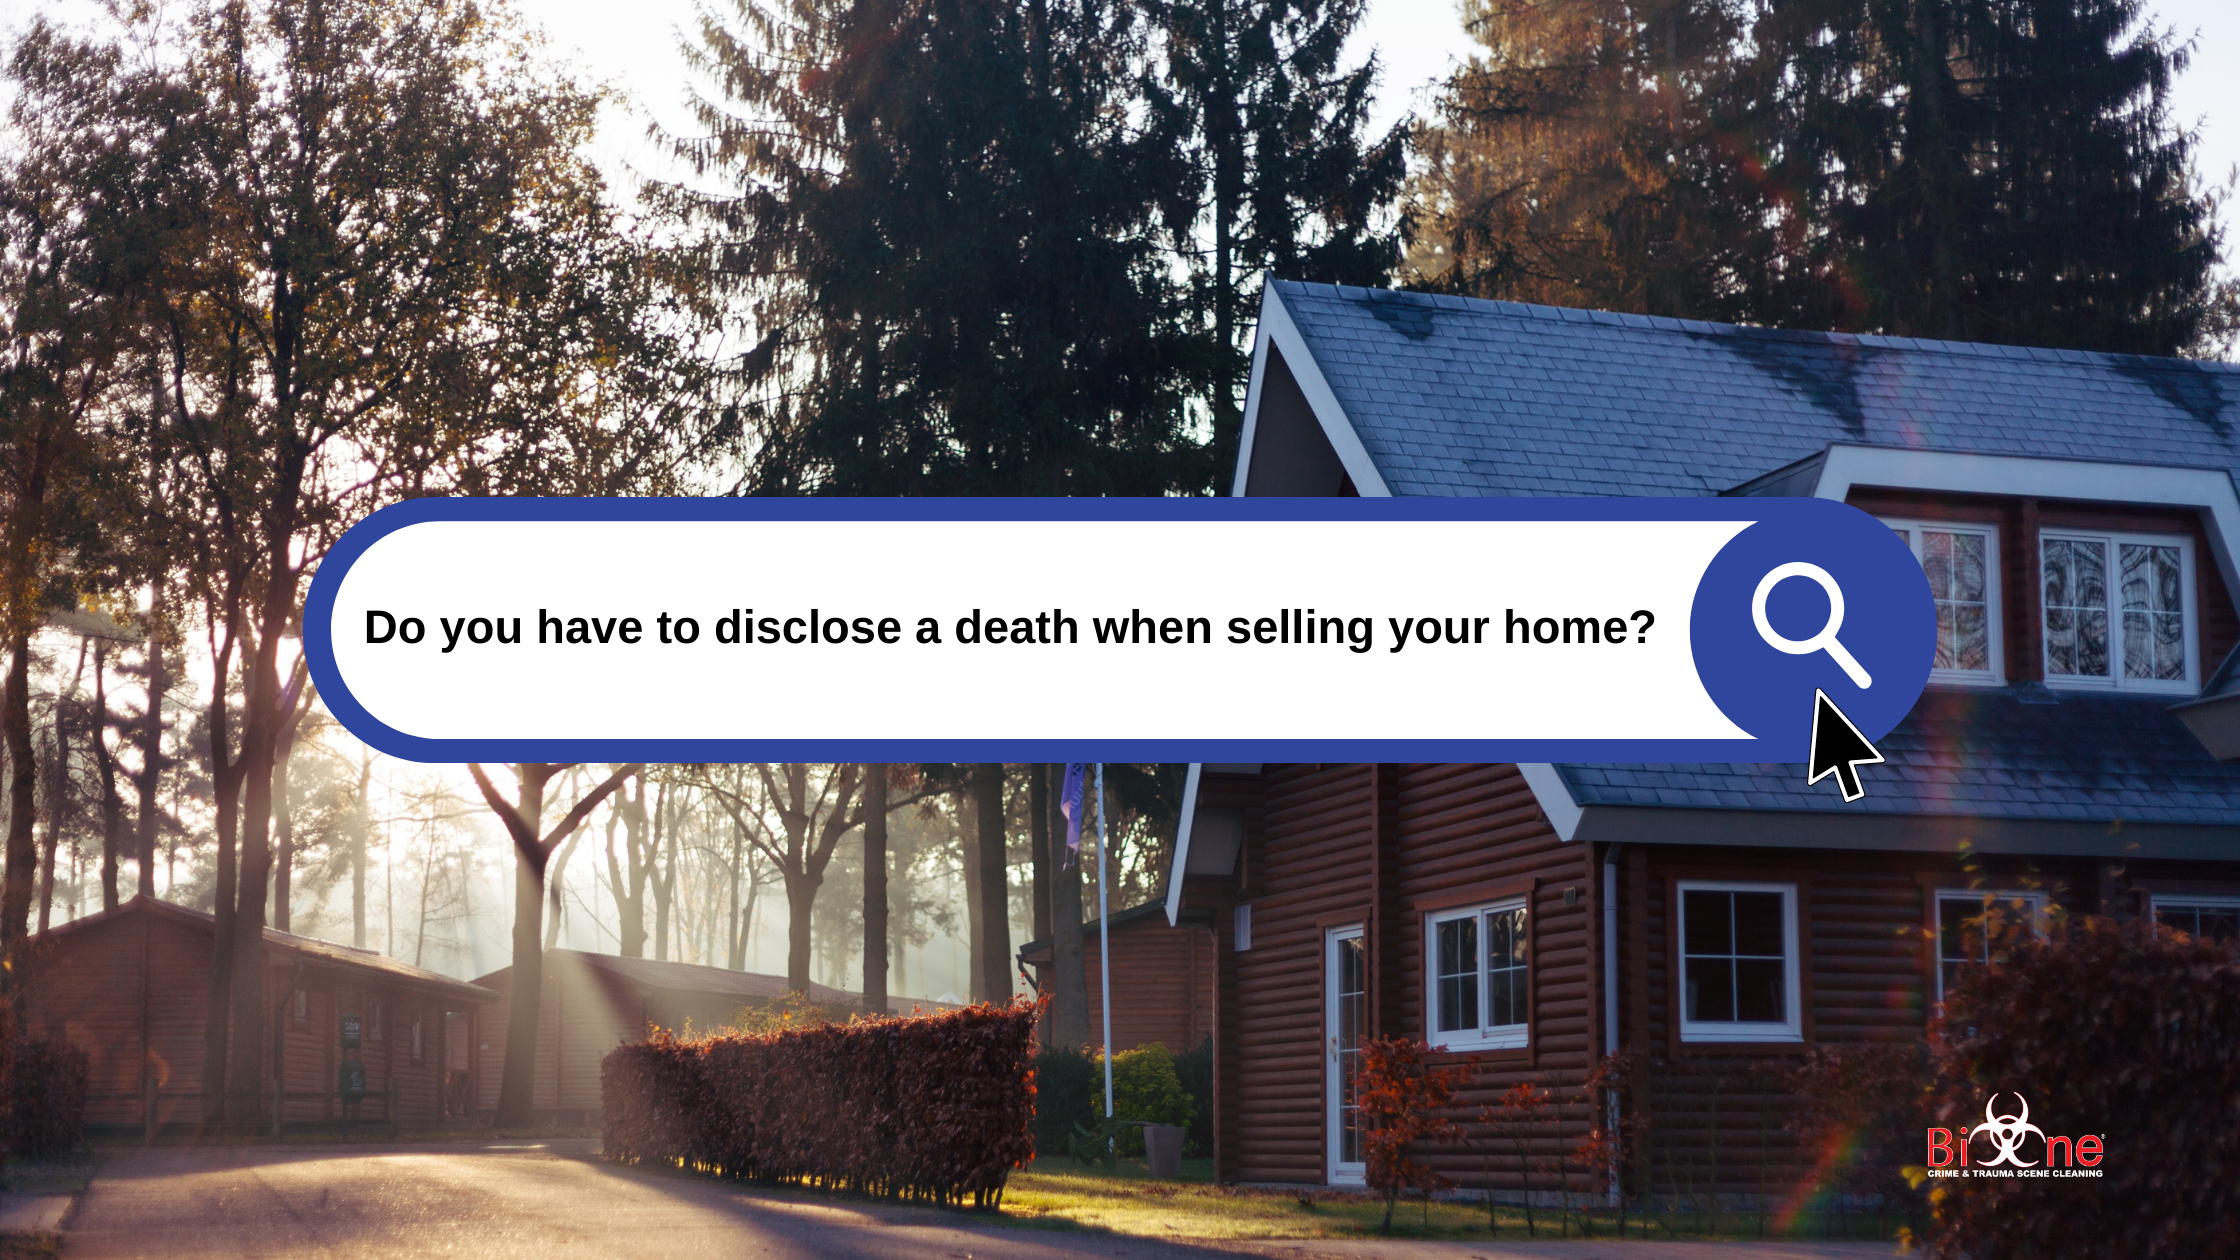 In Connecticut Do you Have to Disclose a Death When Selling Your Home?